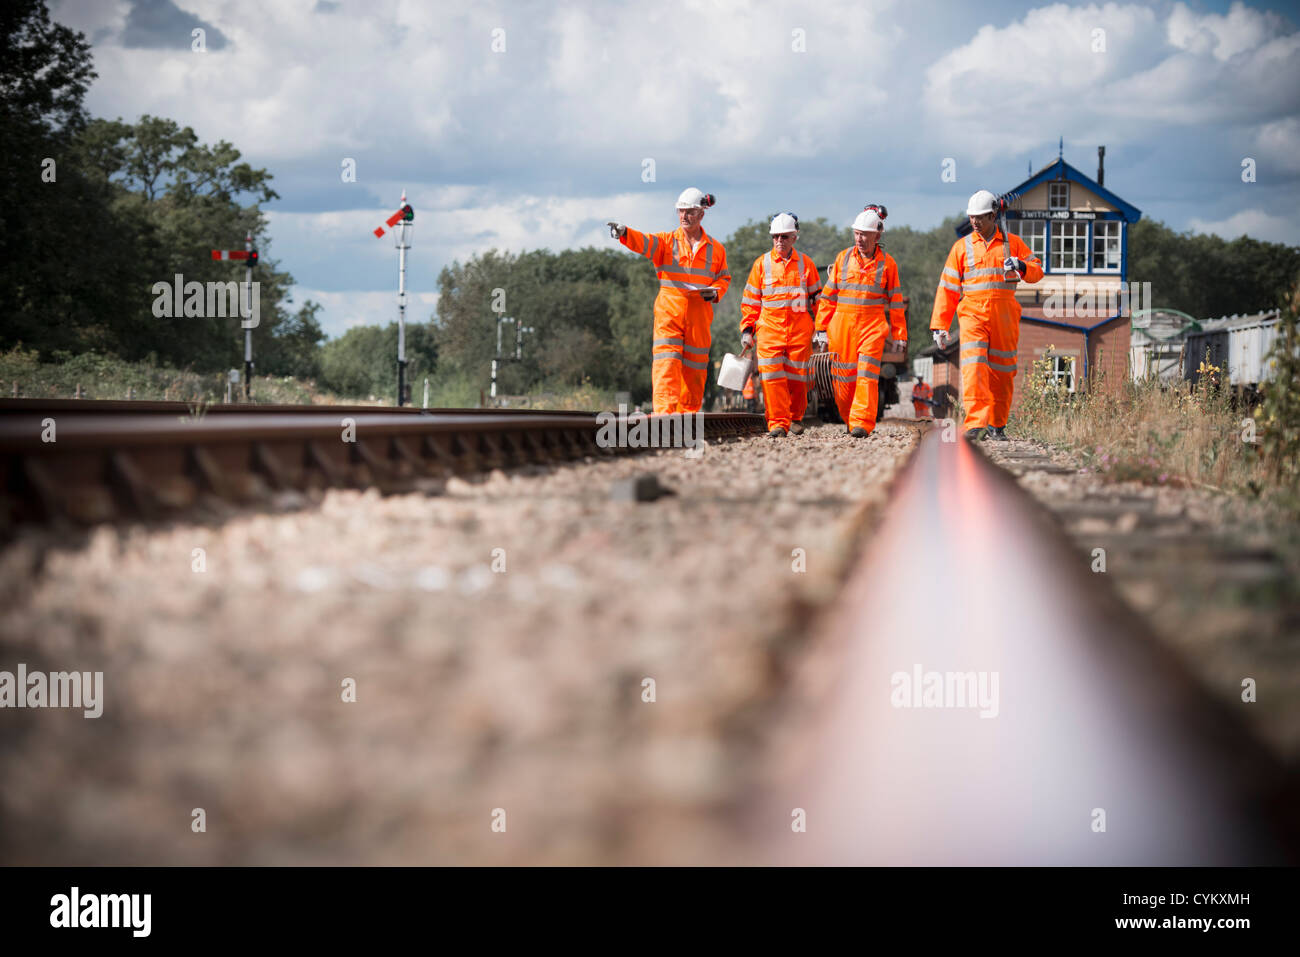 Railway workers walking on train tracks - Stock Image